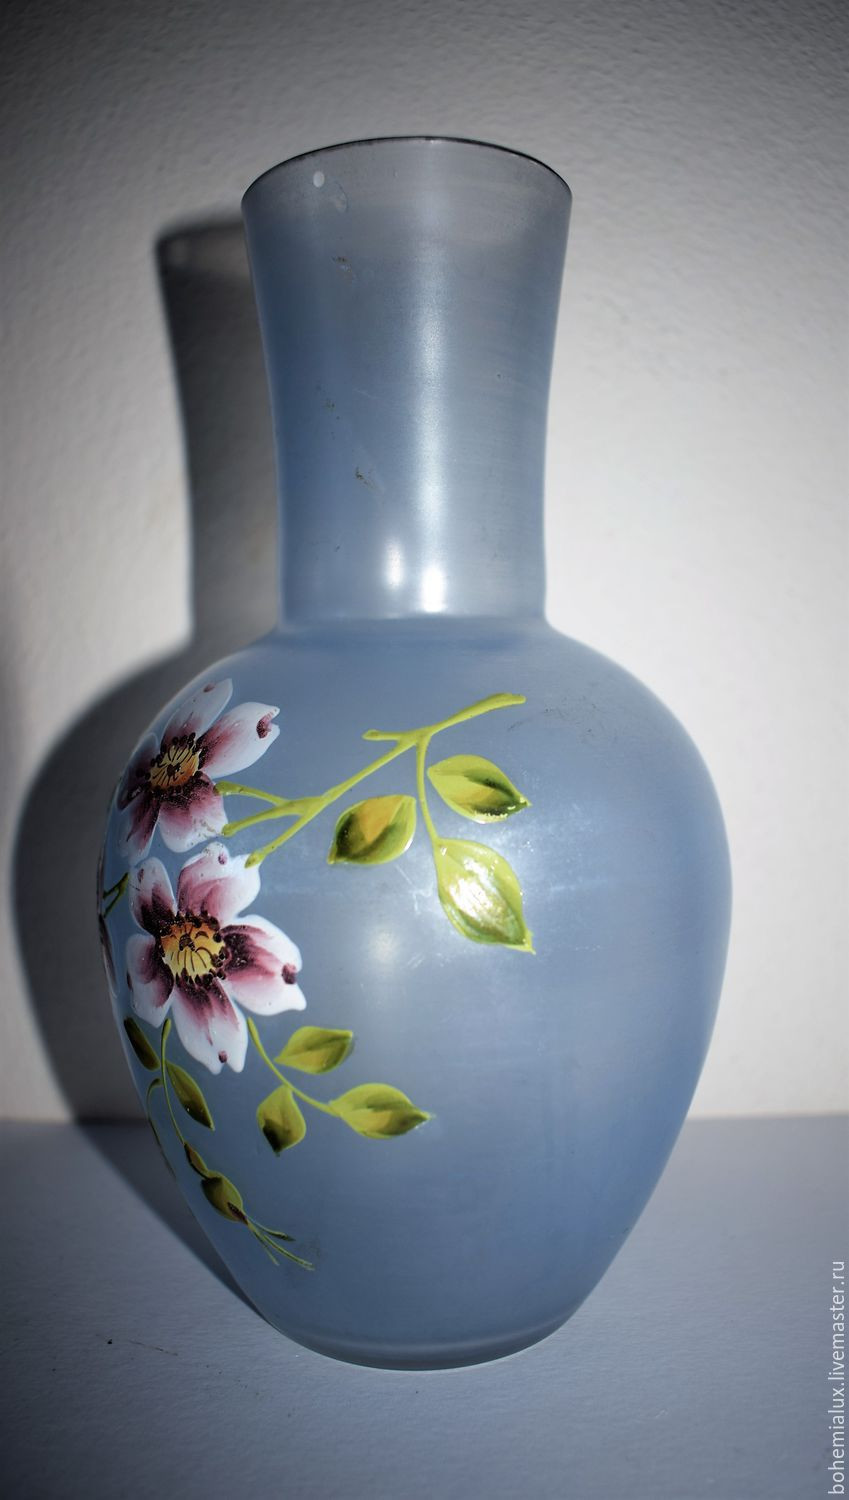 vintage czech glass vase of vintage vase hand painted 19 century bohemia haida shop online on with regard to order vintage vase hand painted 19 century bohemia haida bohemialux